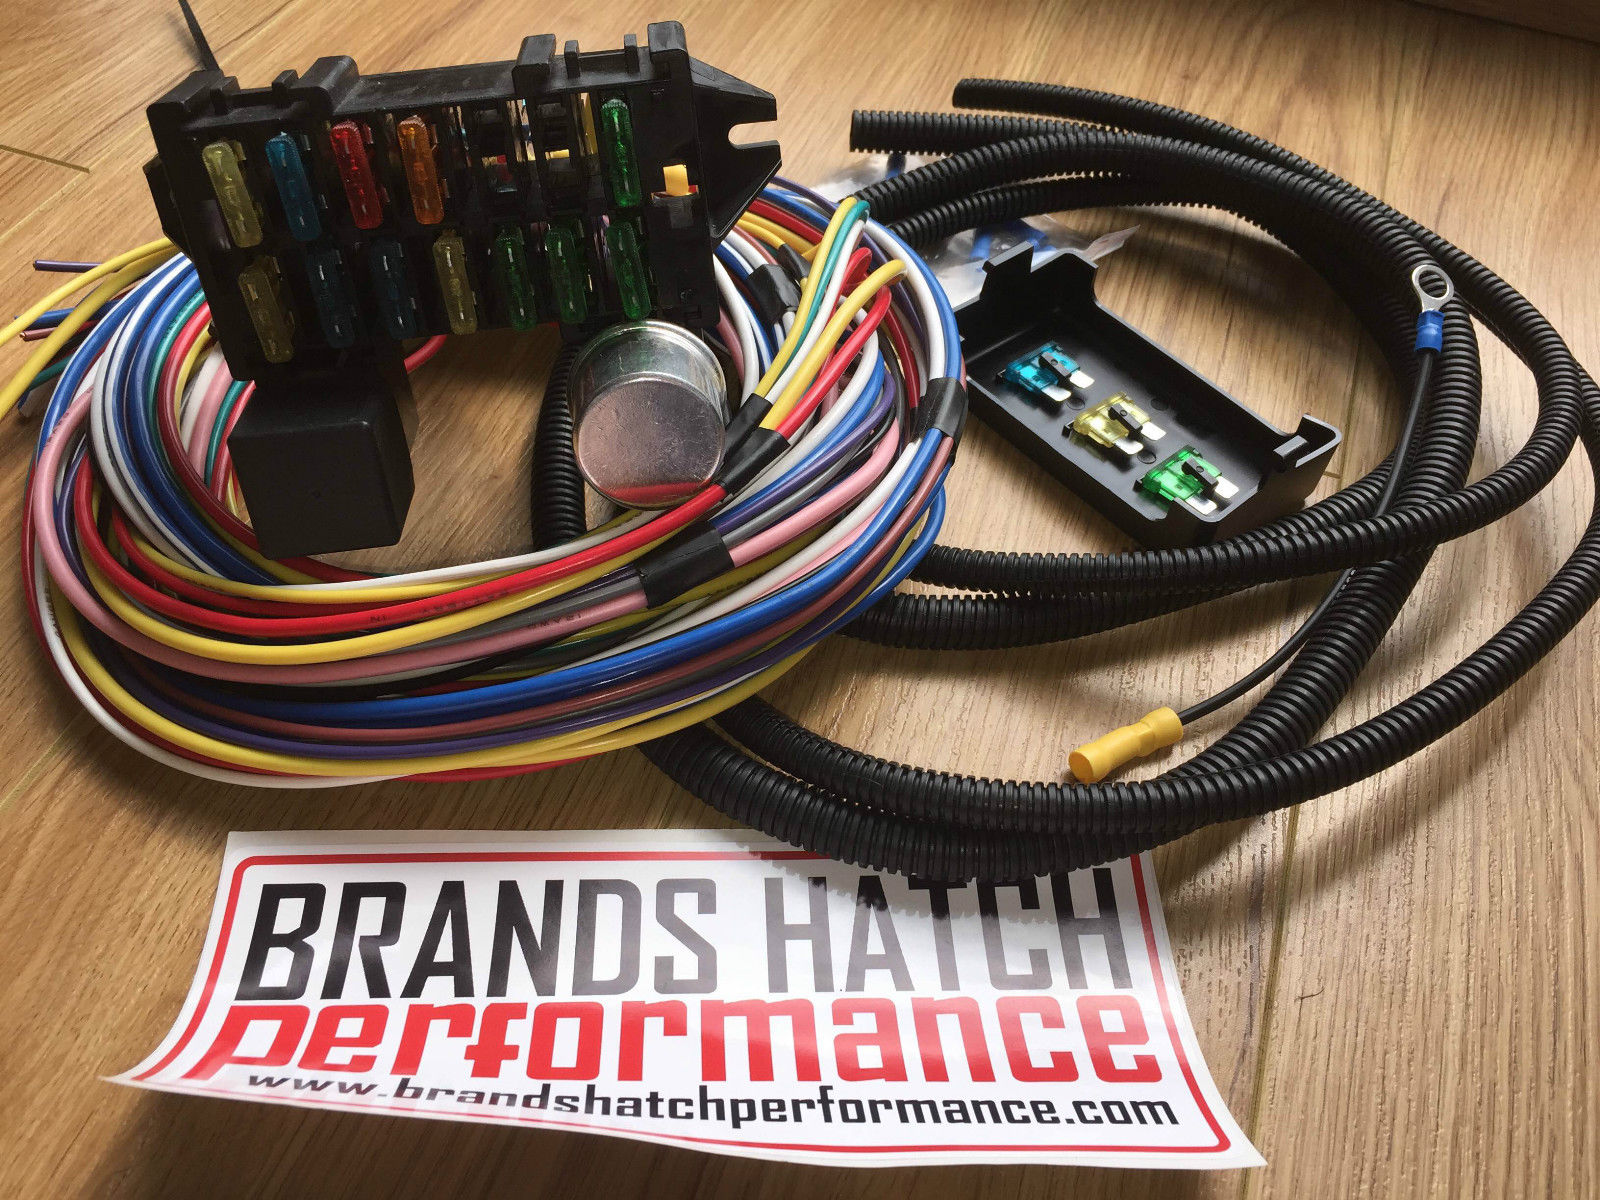 classic car kit car hot rod wiring looms rh turbosport co uk Auto Color Wire Loom Cloth Wire Loom